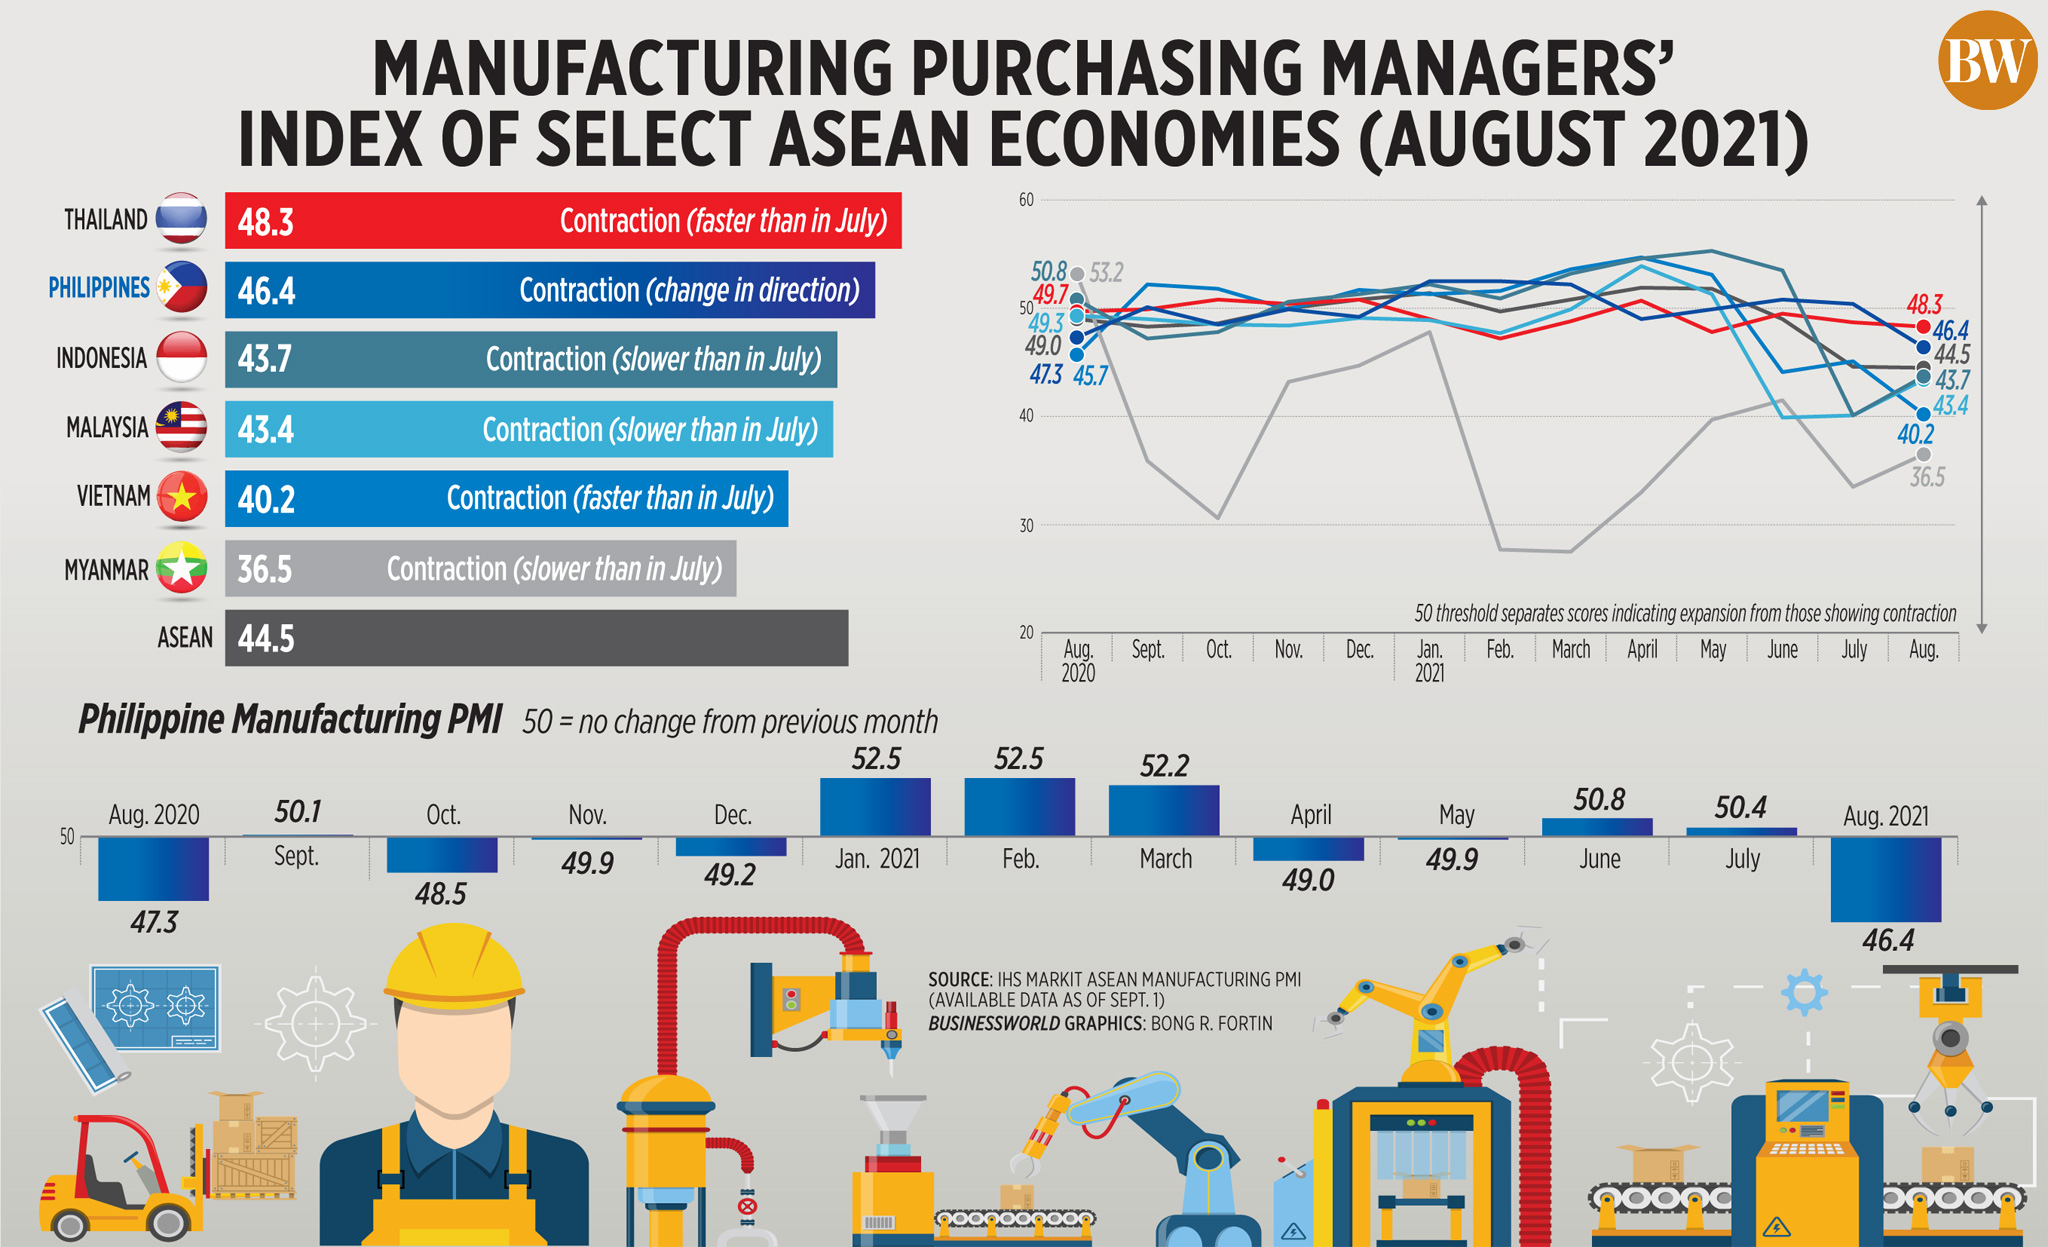 Manufacturing Purchasing Managers' Index of select ASEAN economies (August 2021)